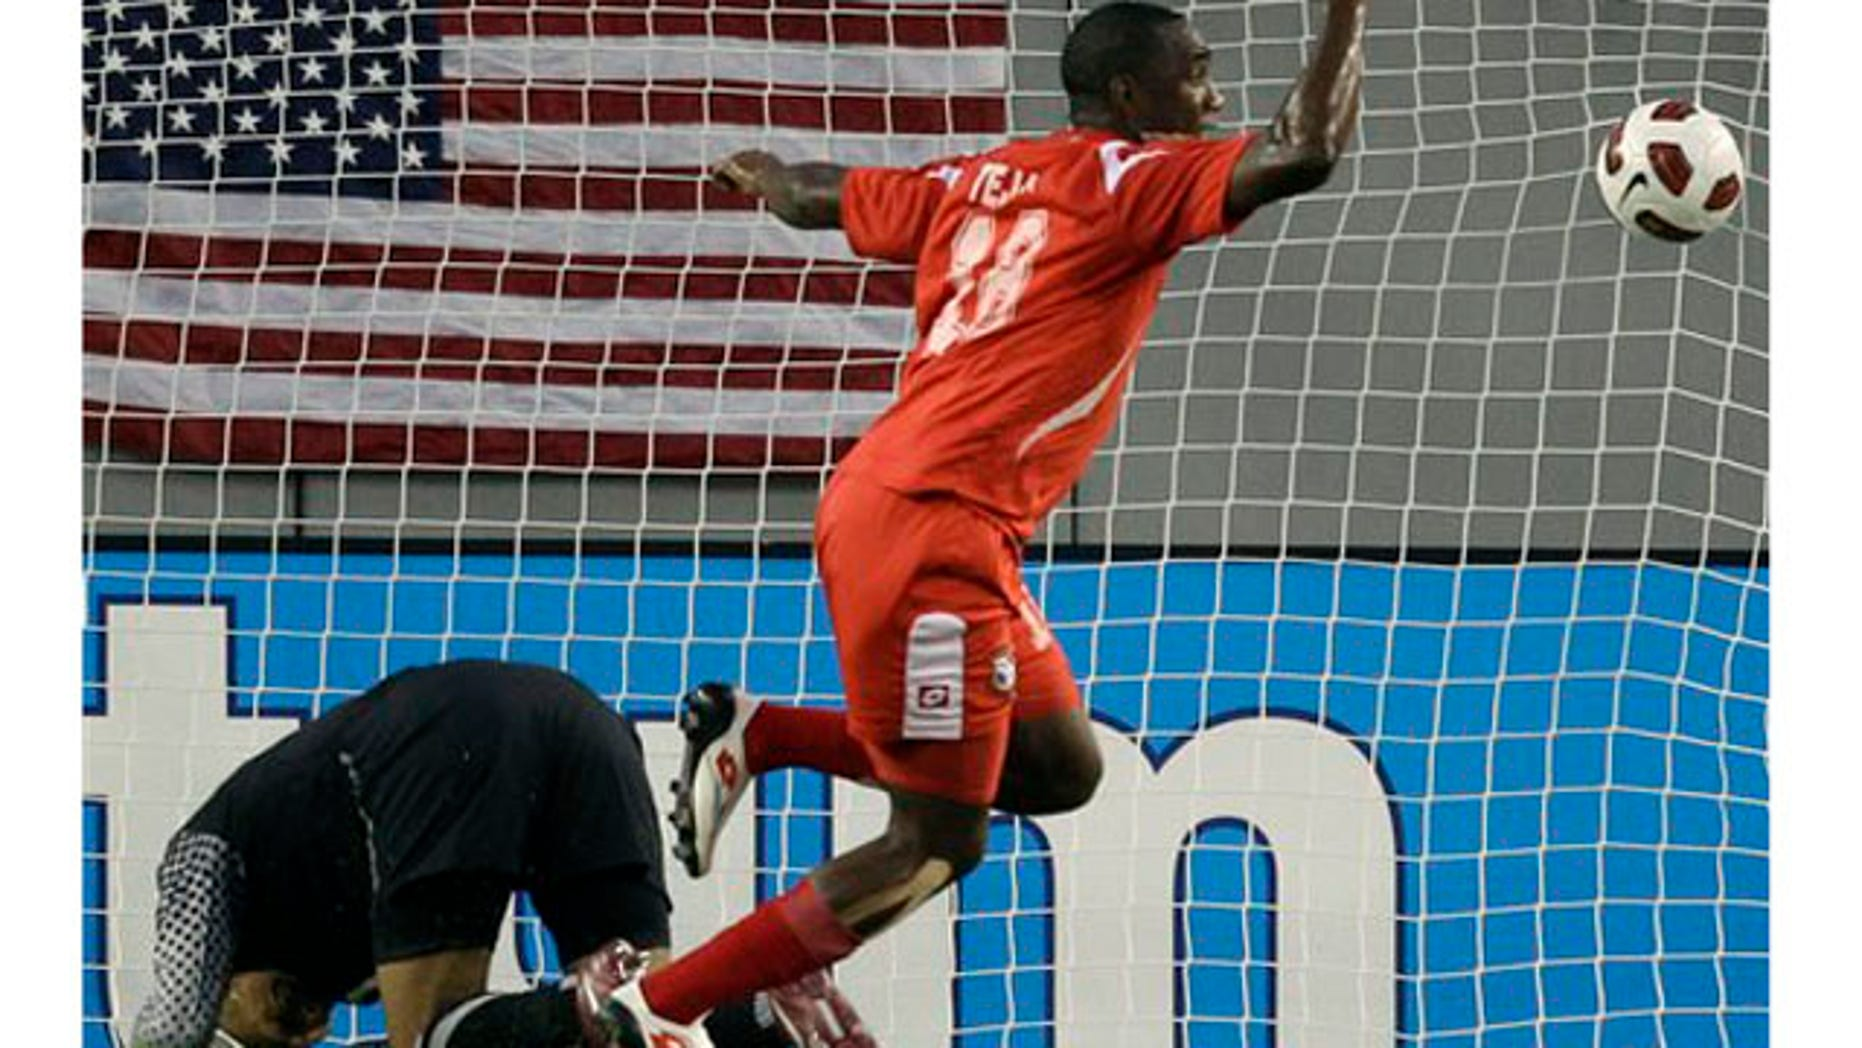 Panama's Luis Tejada (18) celebrates after scoring against United States goalkeeper Tim Howard, left, during the first half of a CONCACAF Gold Cup soccer matchon  Saturday, June 11, 2011, in Tampa, Fla. (AP Photo/Chris O'Meara)